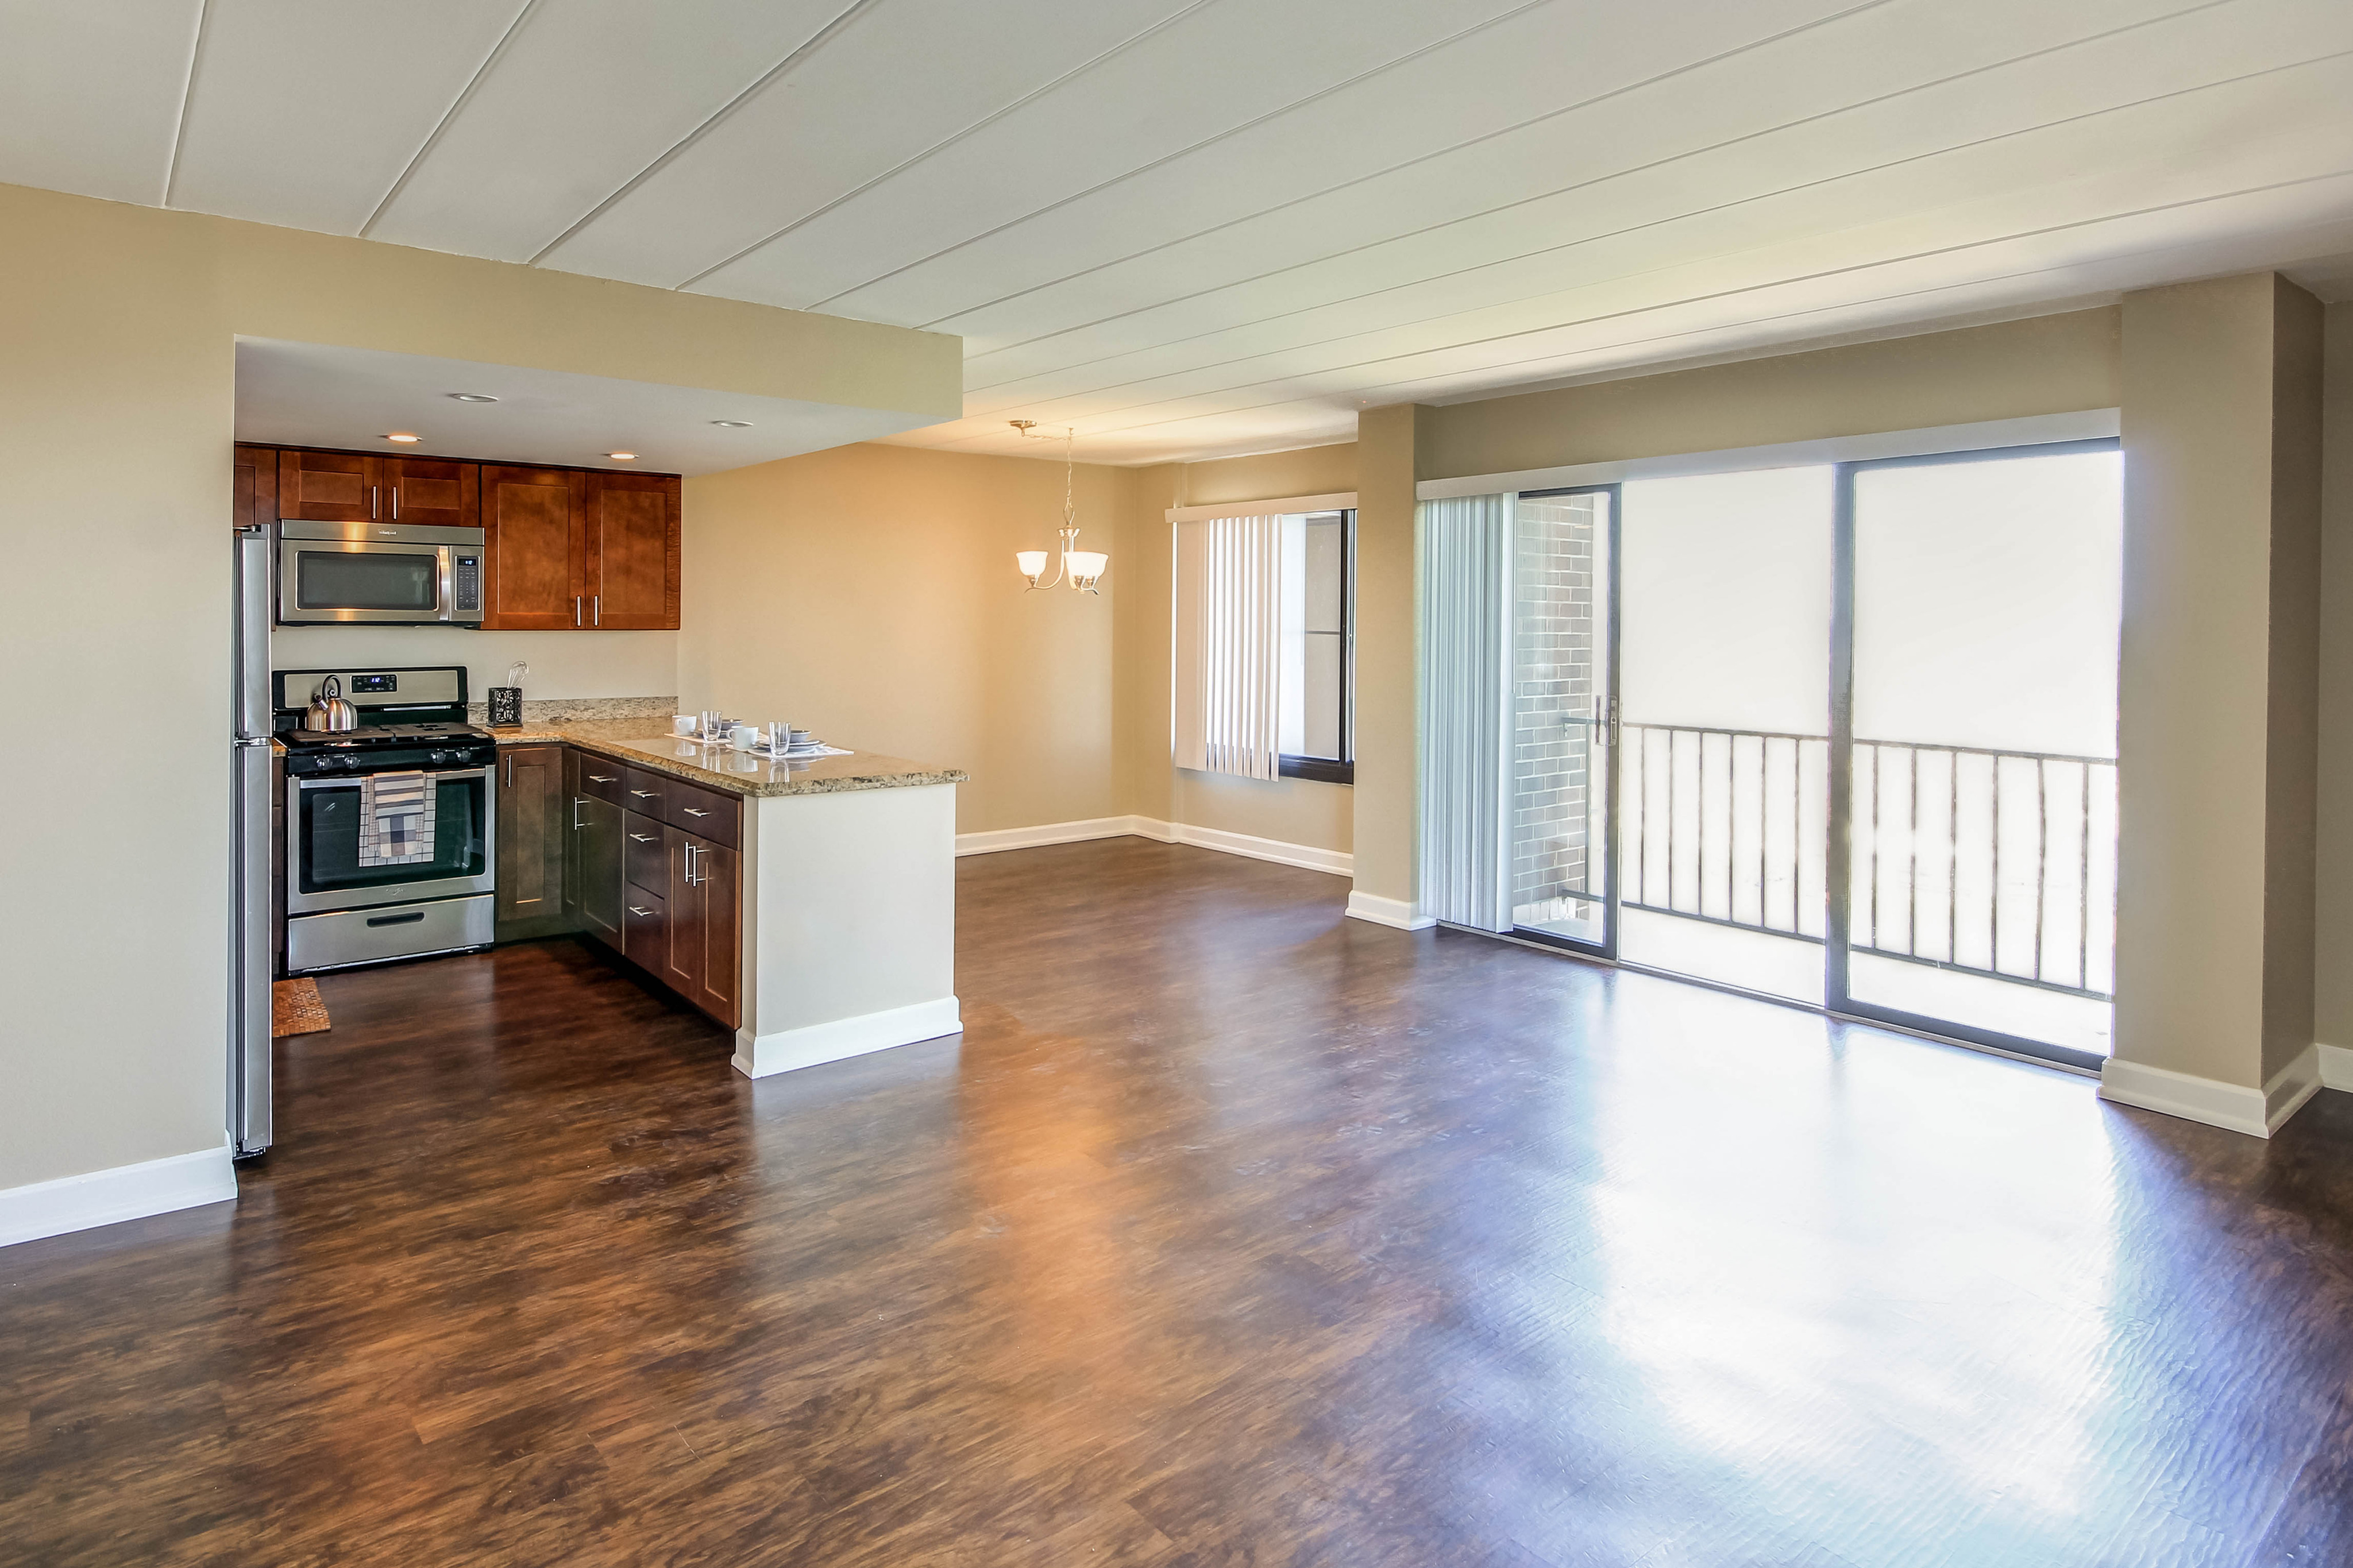 Image of Hardwood-Style Flooring* for Grandview Pointe Apartments